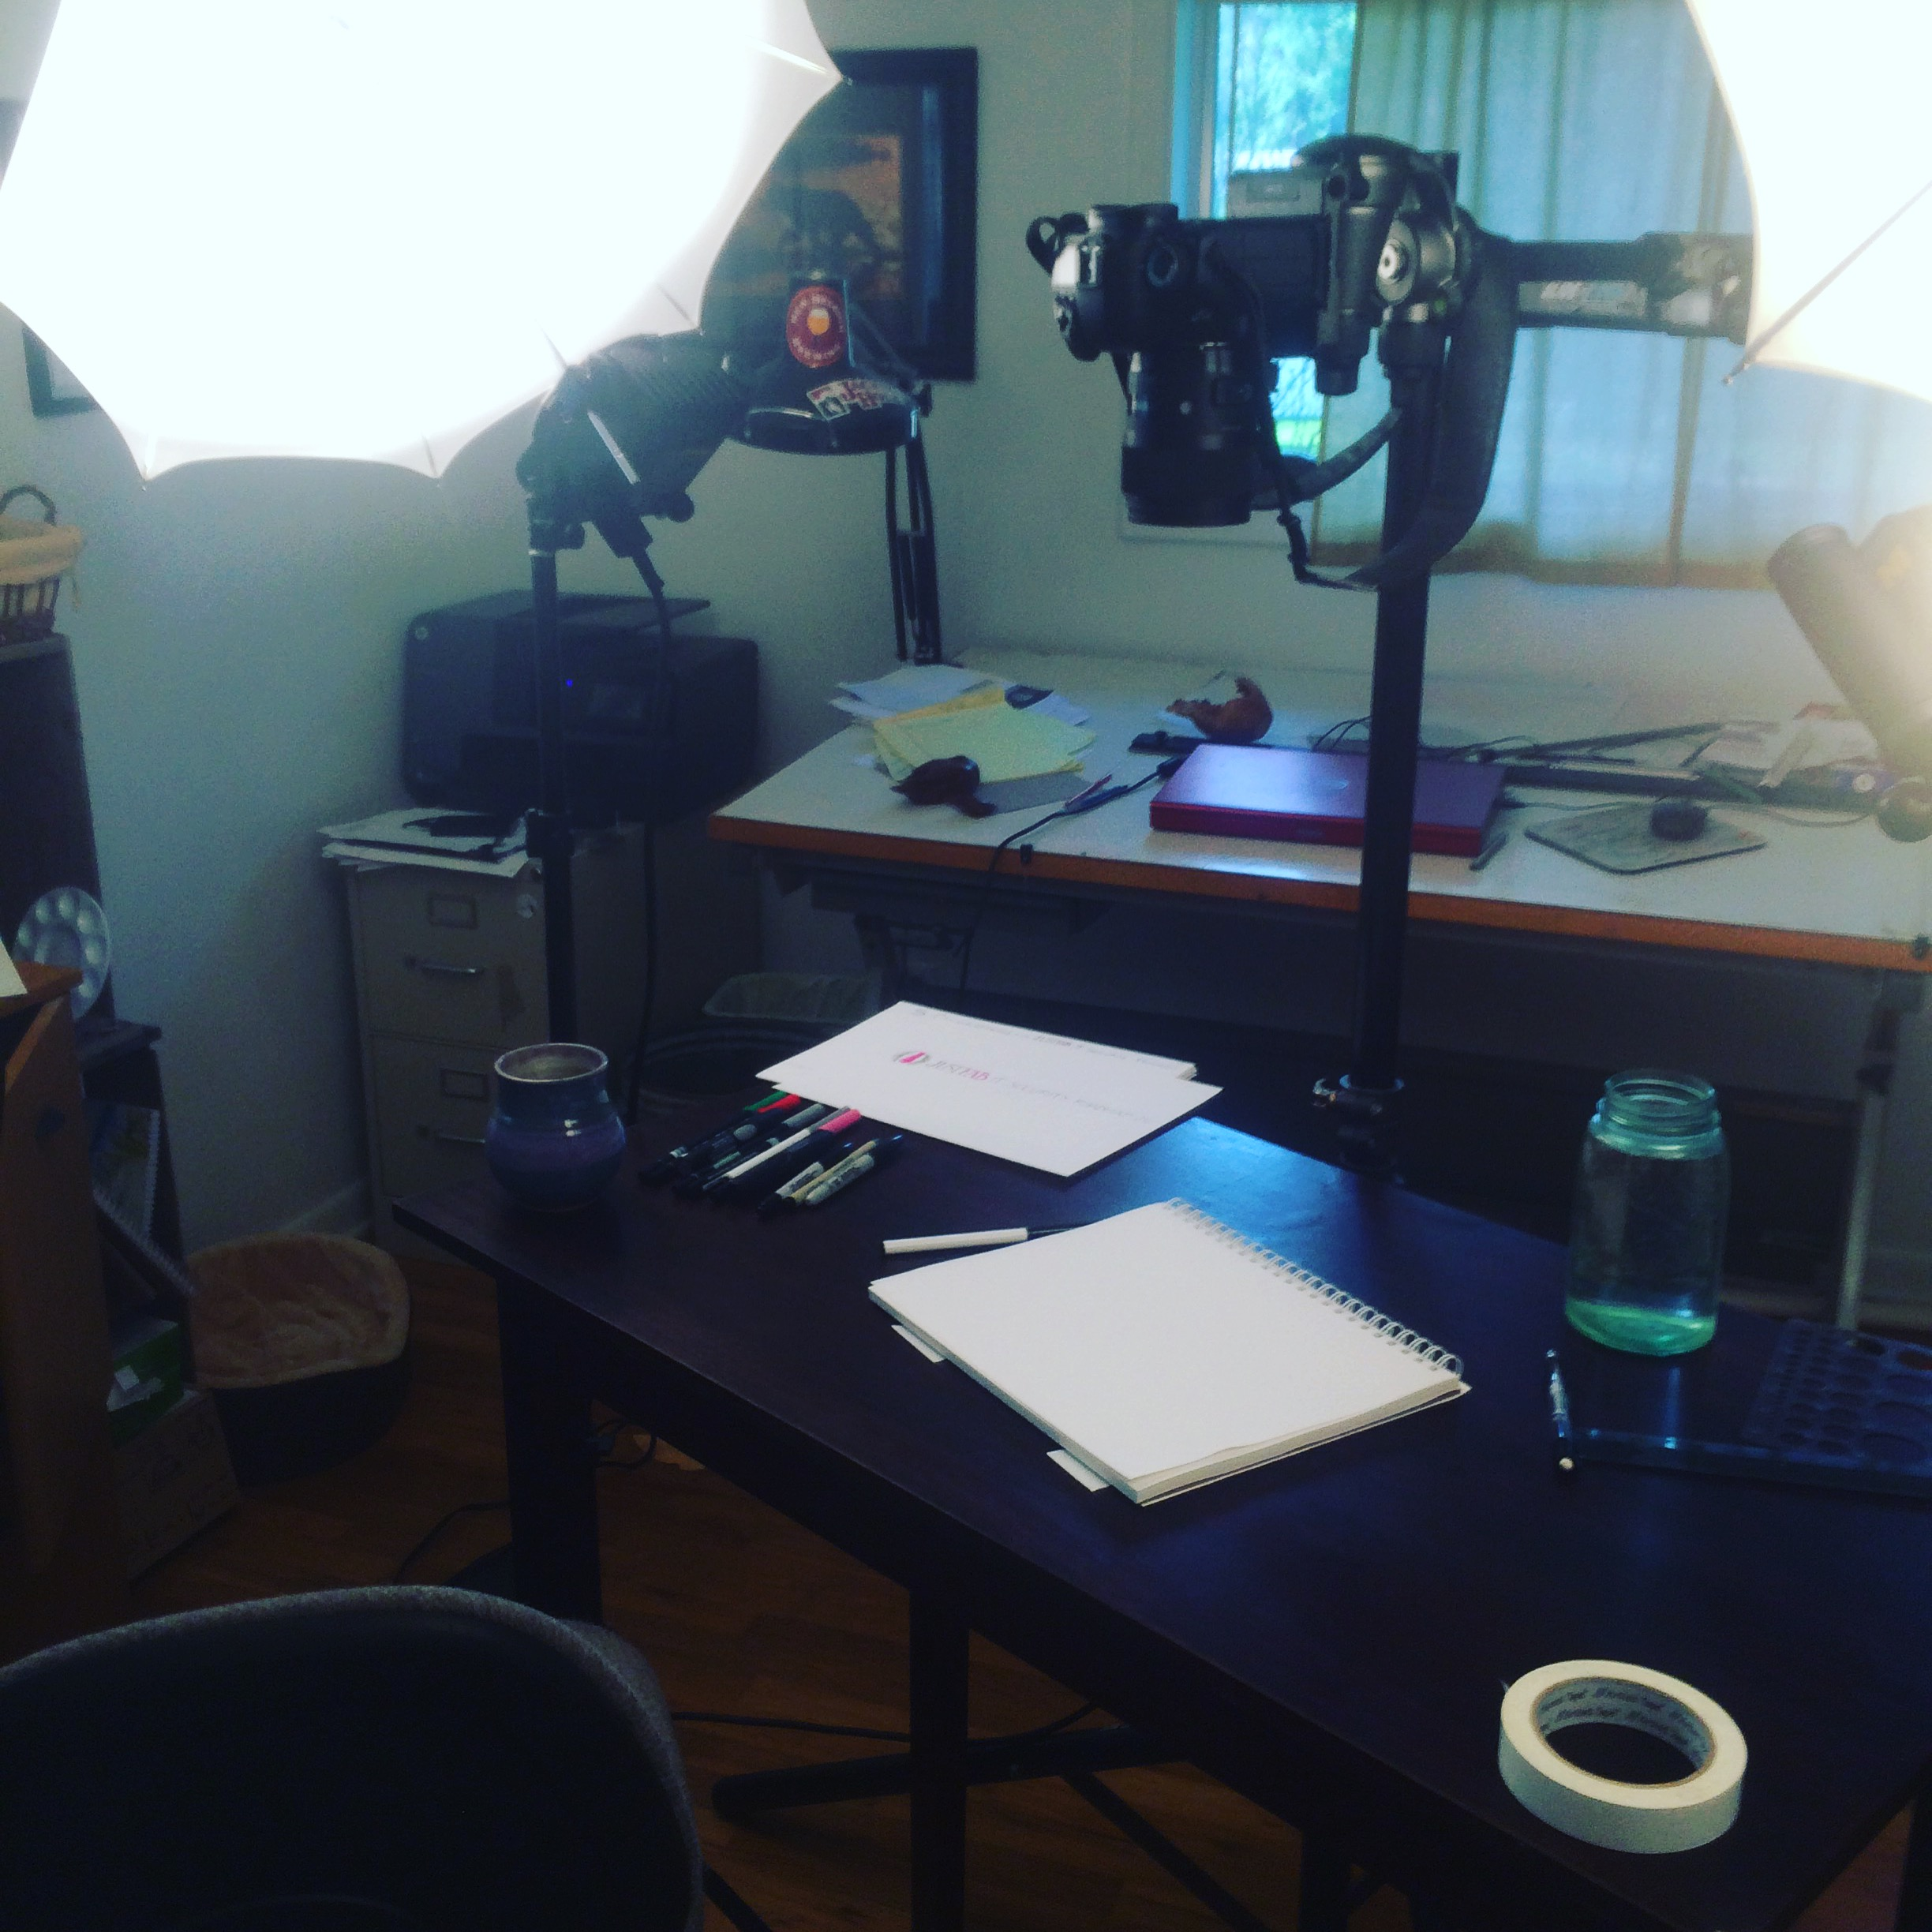 Last week I shared a finished explainer video on Dialogue and Deliberation, this week is a more behind-the-scenes perspective. Here's a shot of my video recording set up for the most recent video I recorded. I won't be able to share the video per my client's privacy, but I can show you that the magic is made right here!